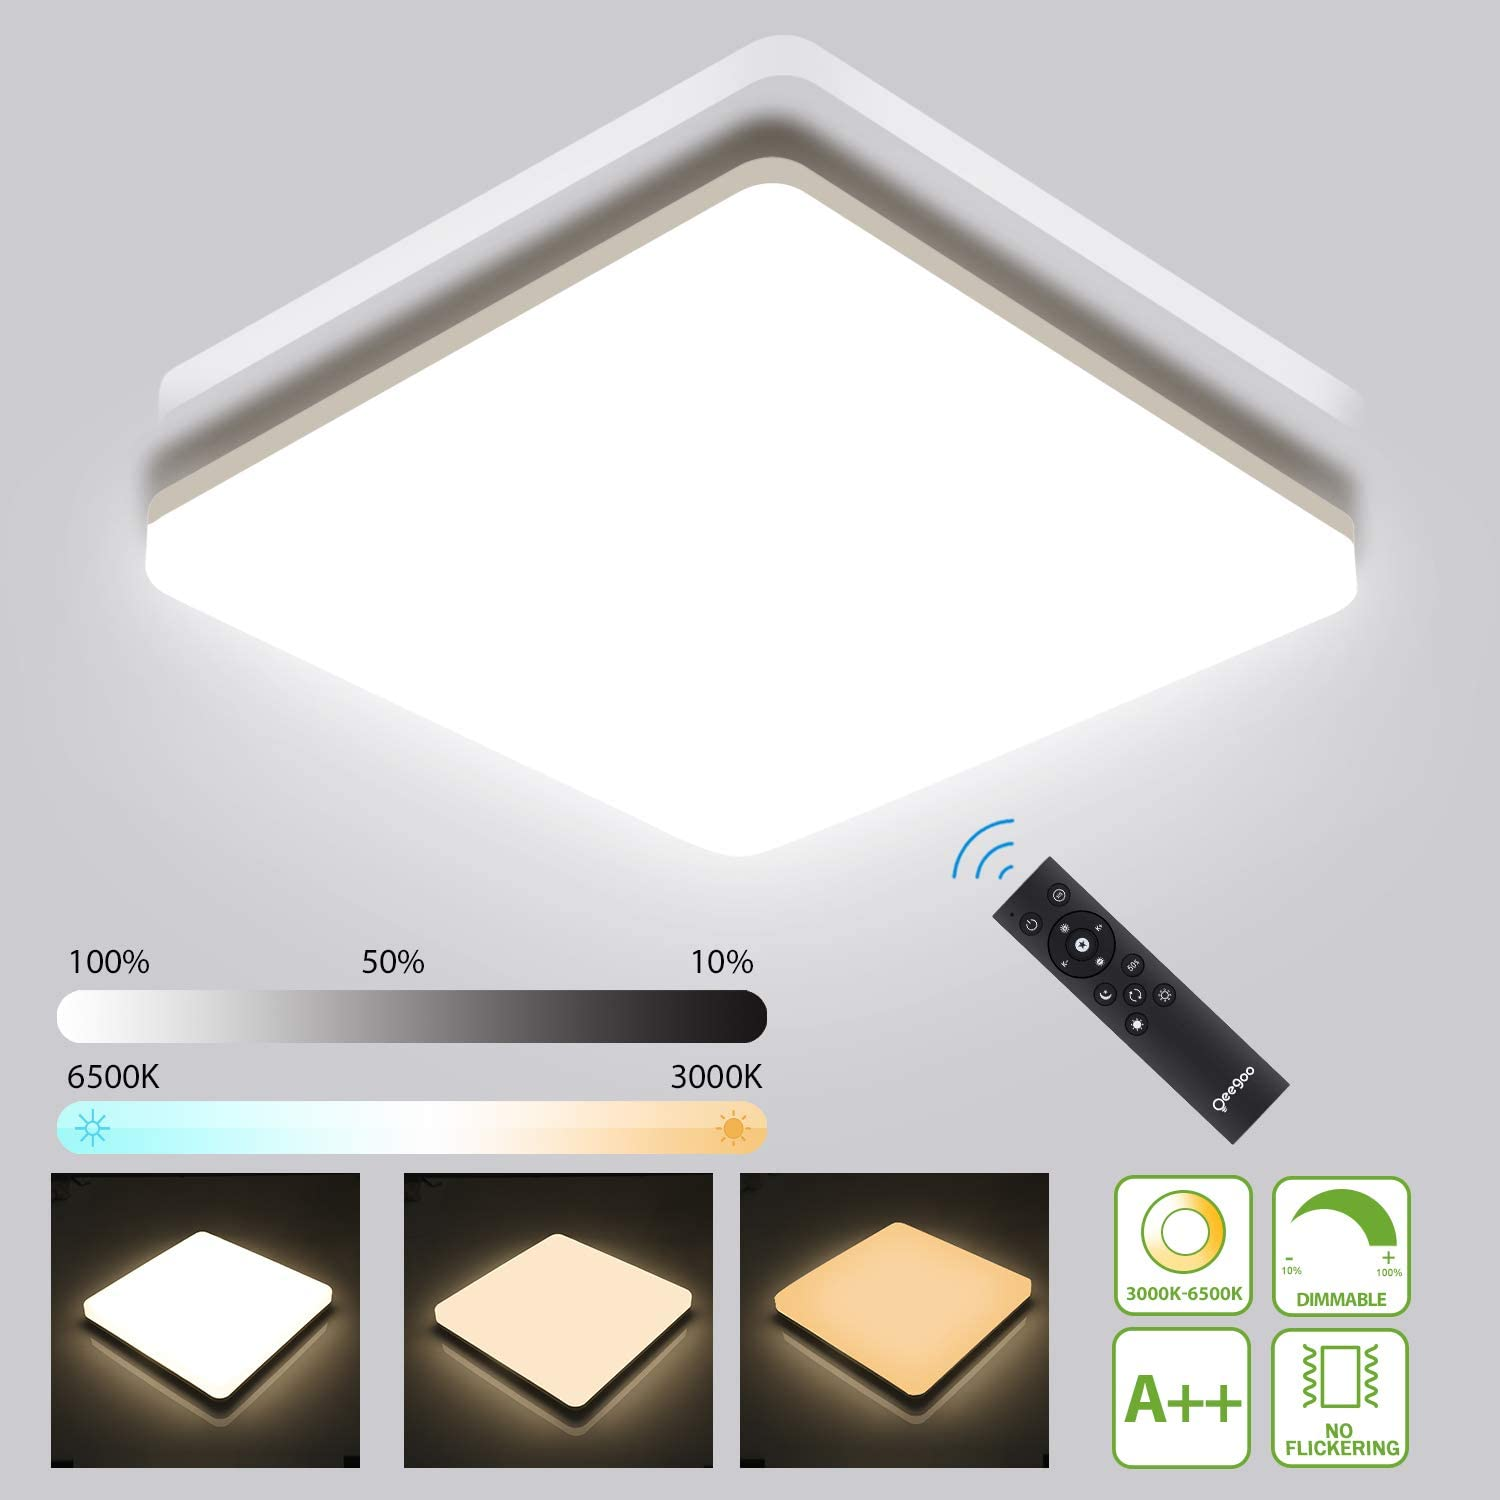 Oeegoo LED Ceiling Light Fixture Dimmable with Remote Control - 3000K-6500K Color Temperature & 10%-100% Brightness, 36W 3600LM IP54 Waterproof Square Ceiling Lamp for Bedroom, Living Room, Bathroom